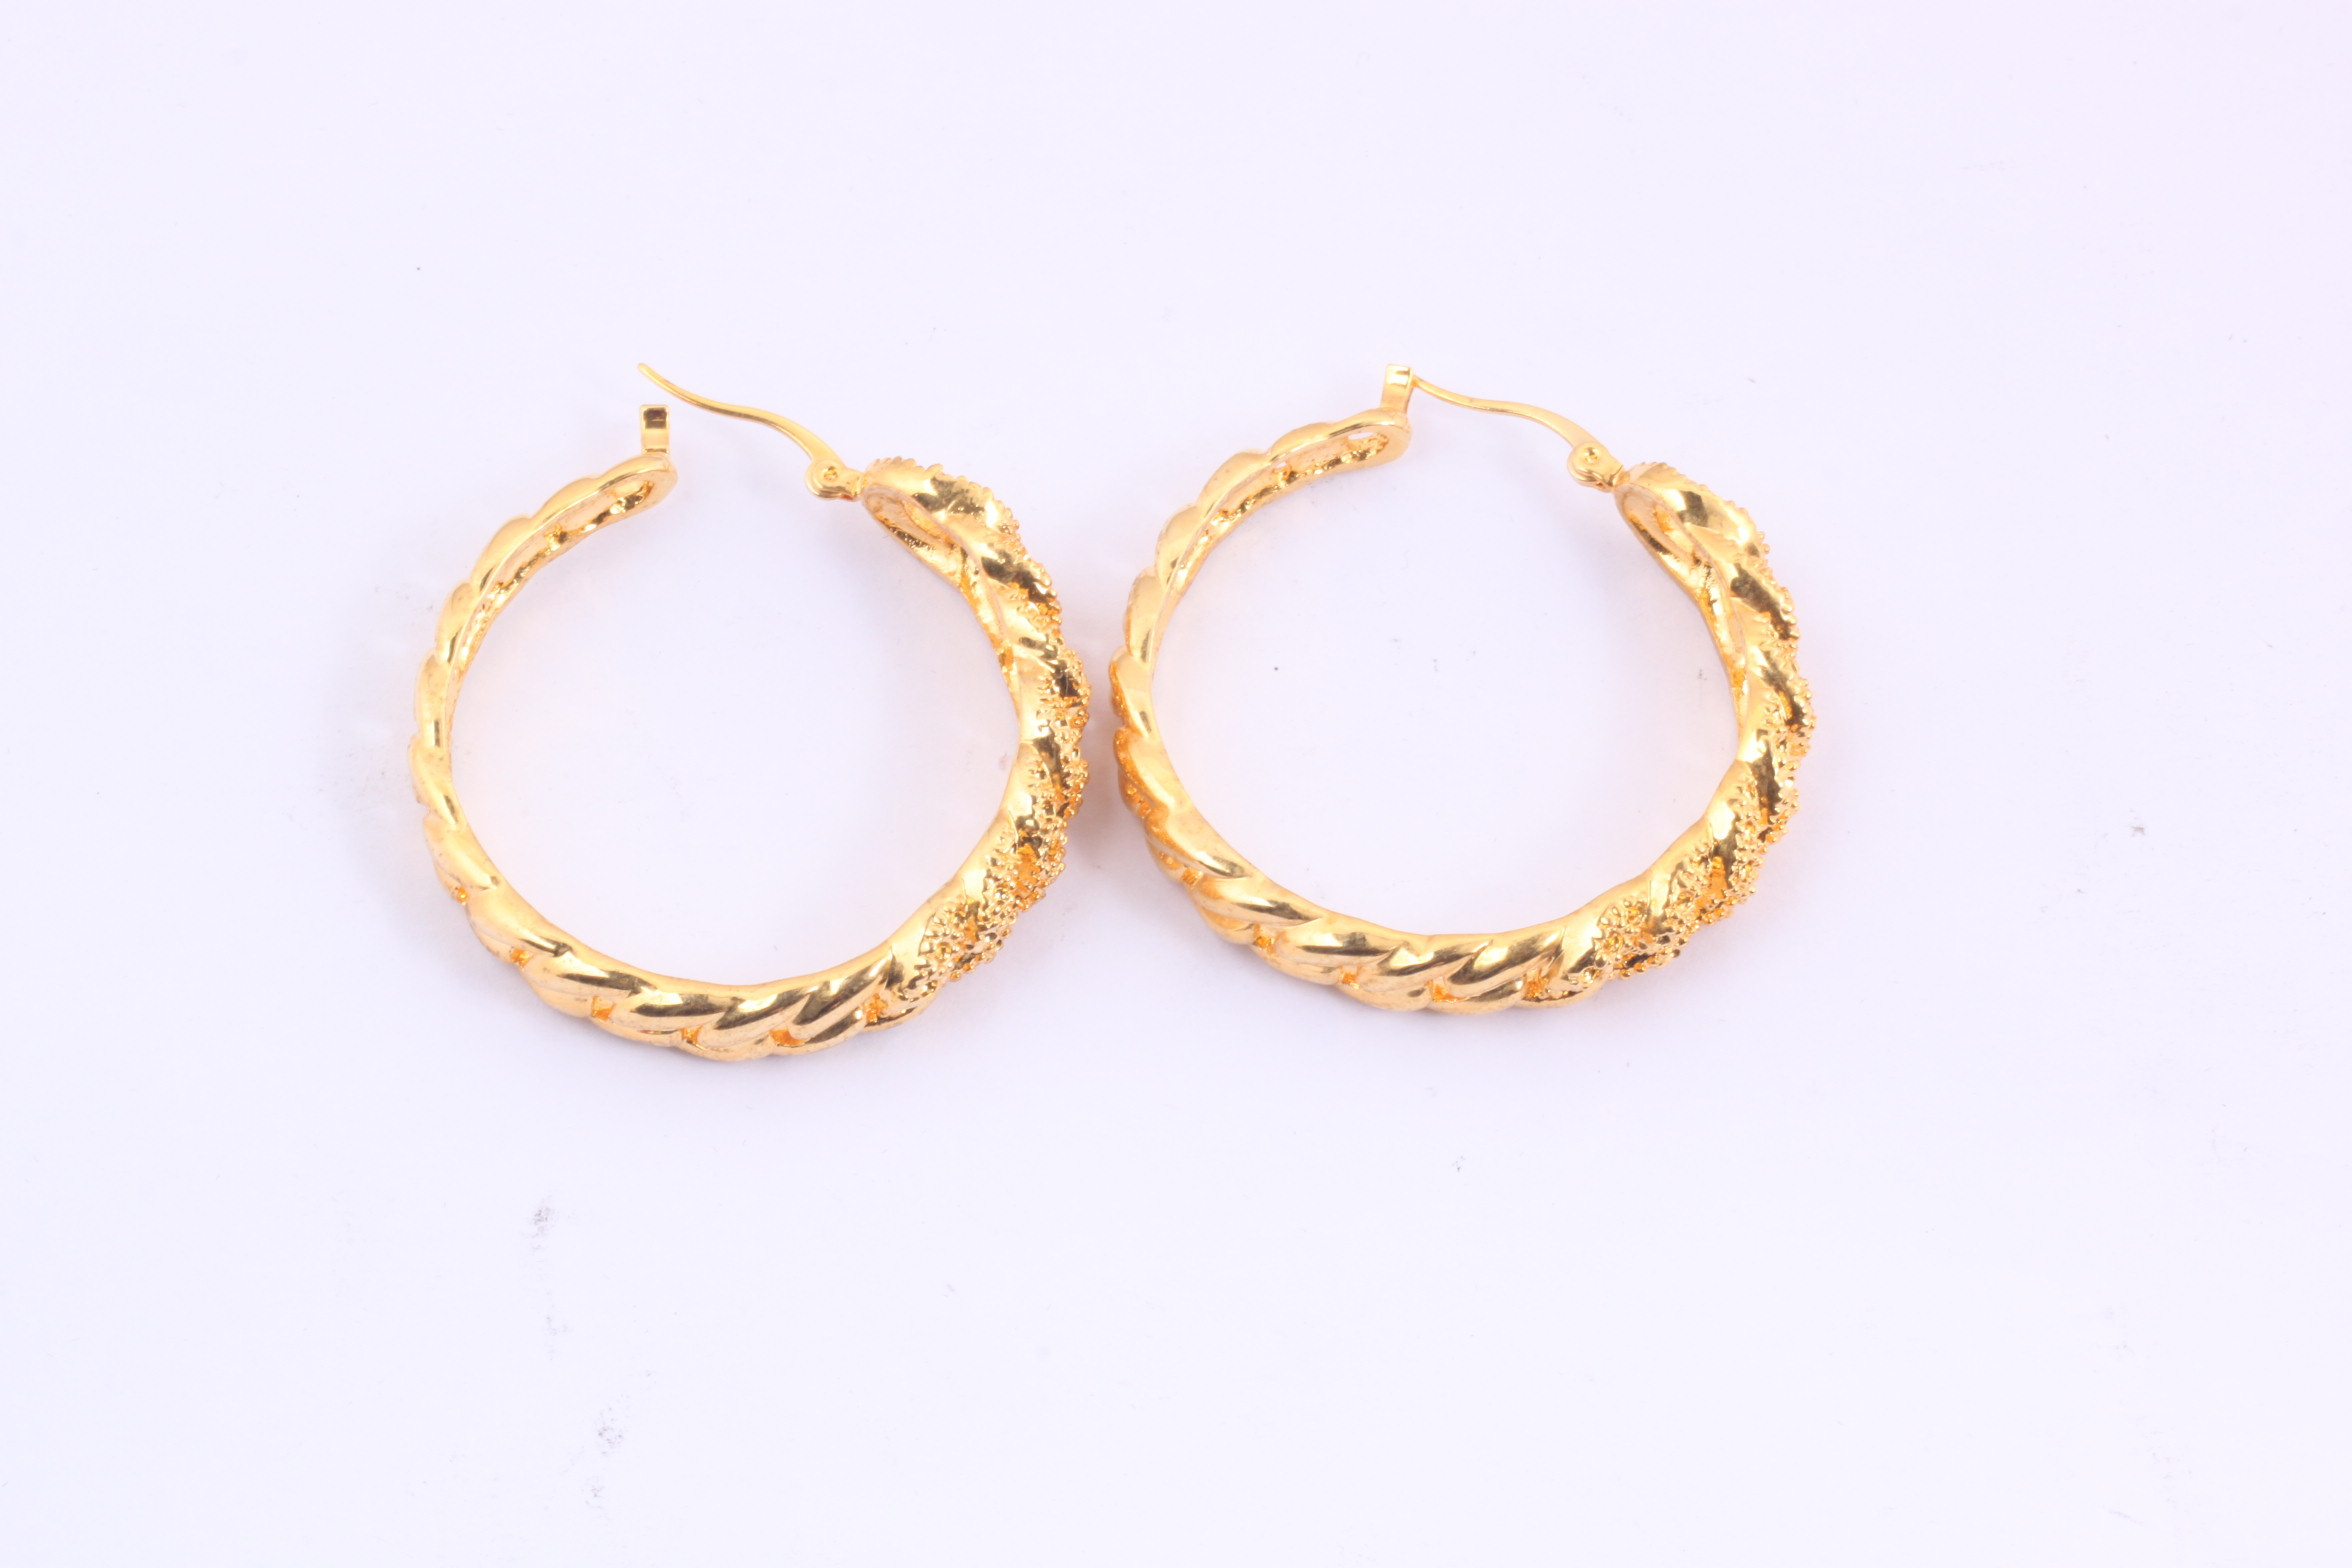 Wholesale Stainless Steel Hoop Earrings with Gold Ball